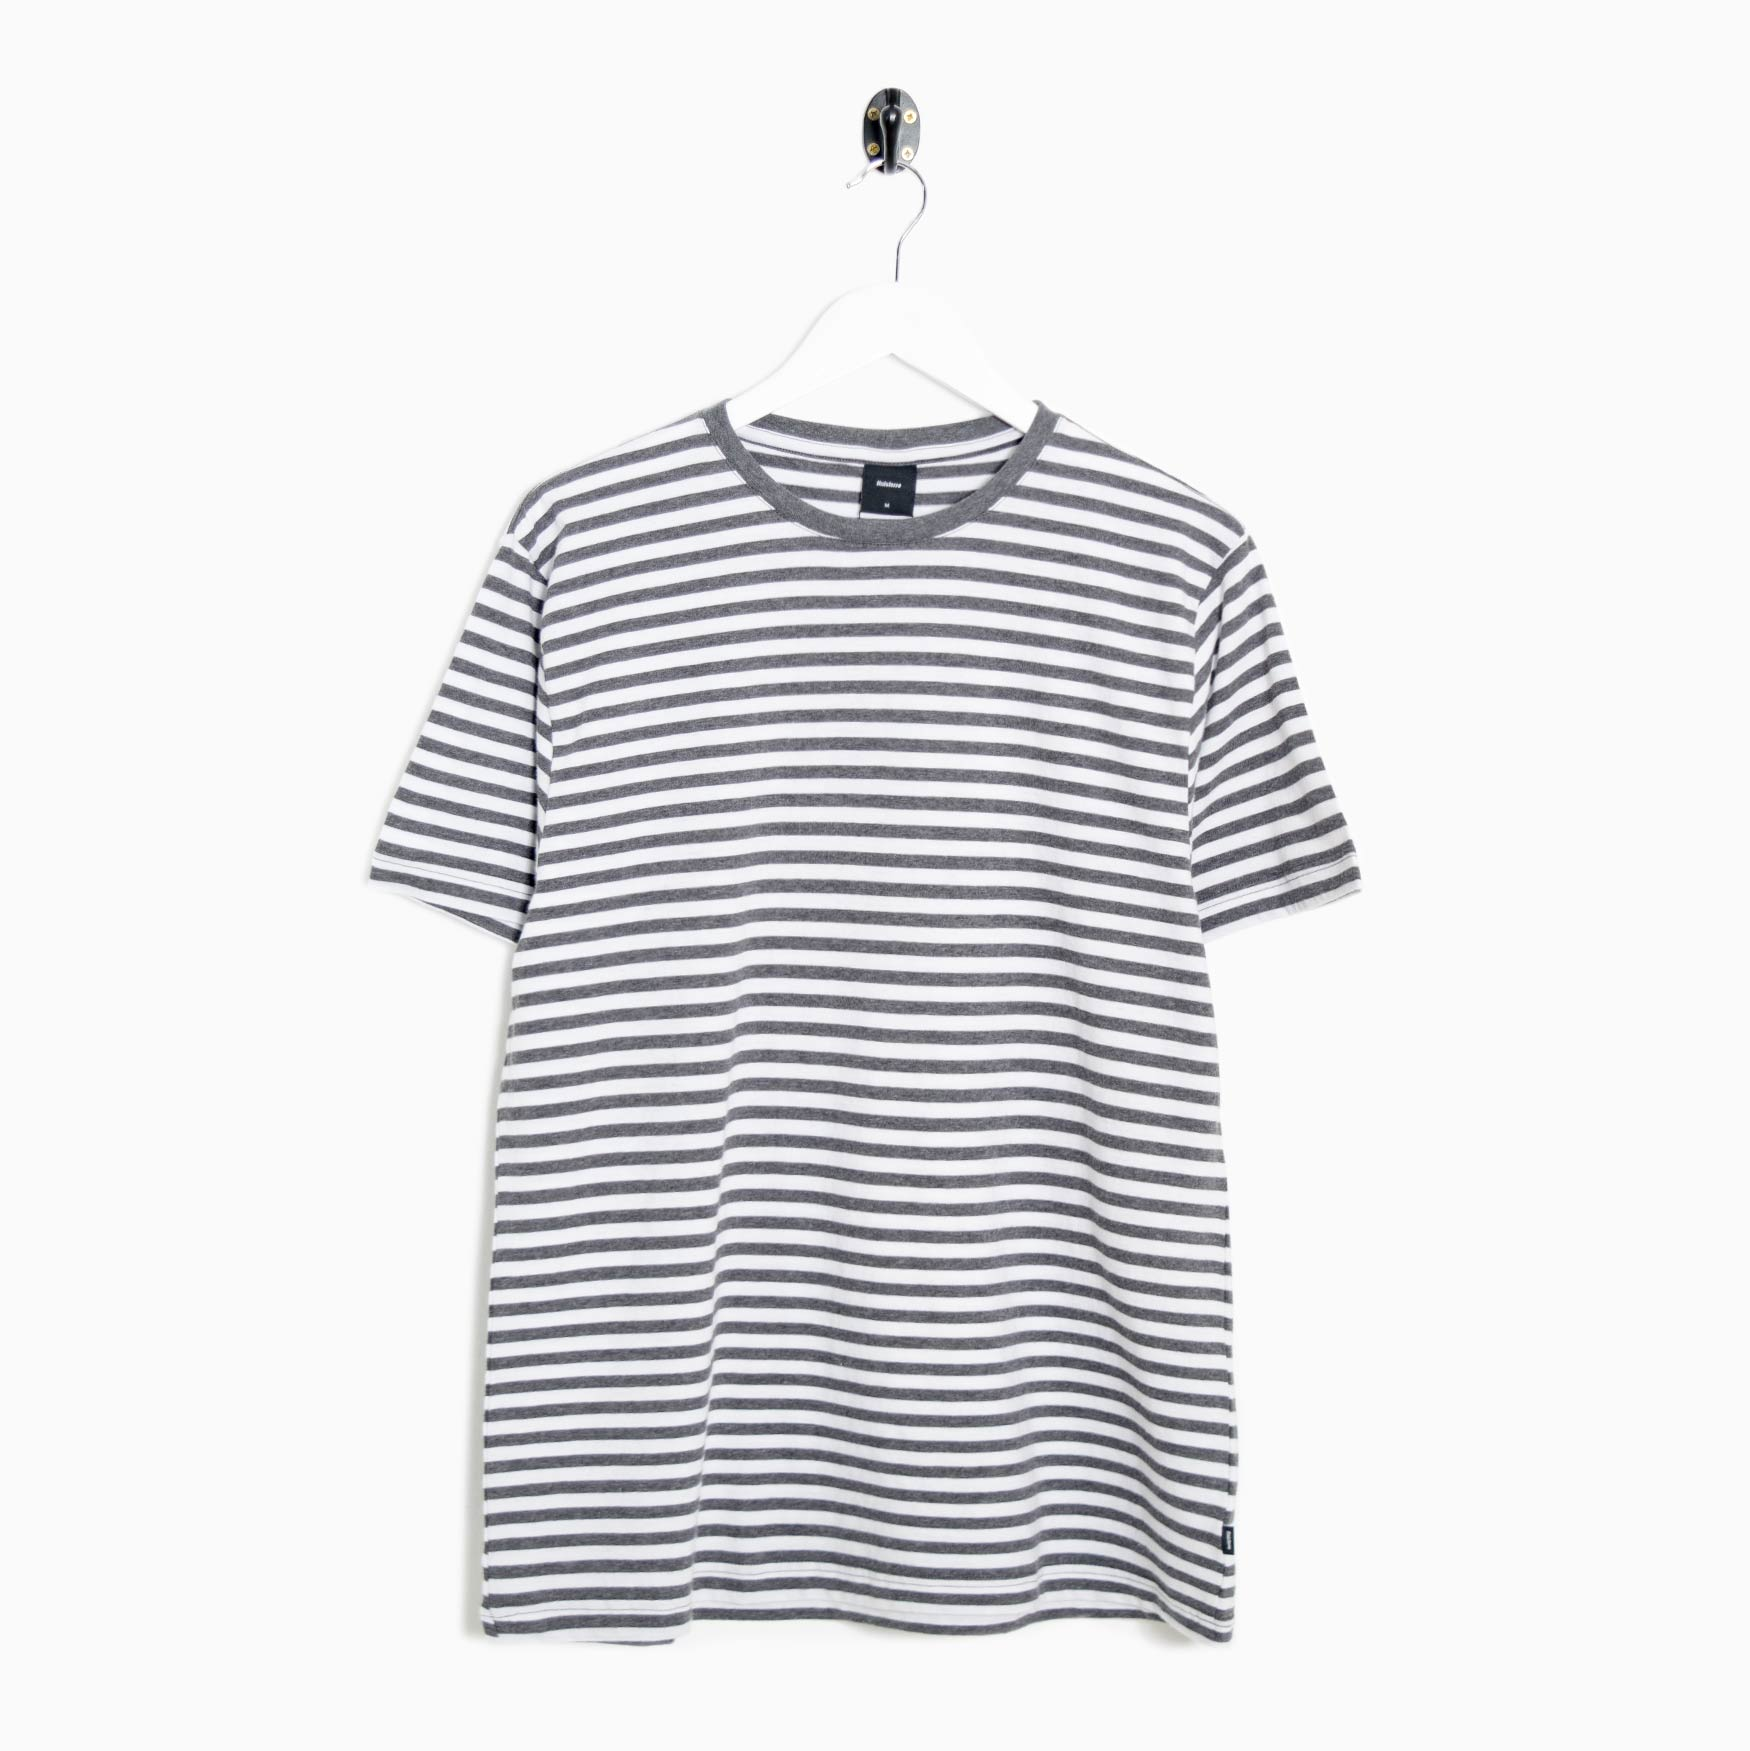 Finisterre Bannel Stripe T-Shirt - Charcoal / White